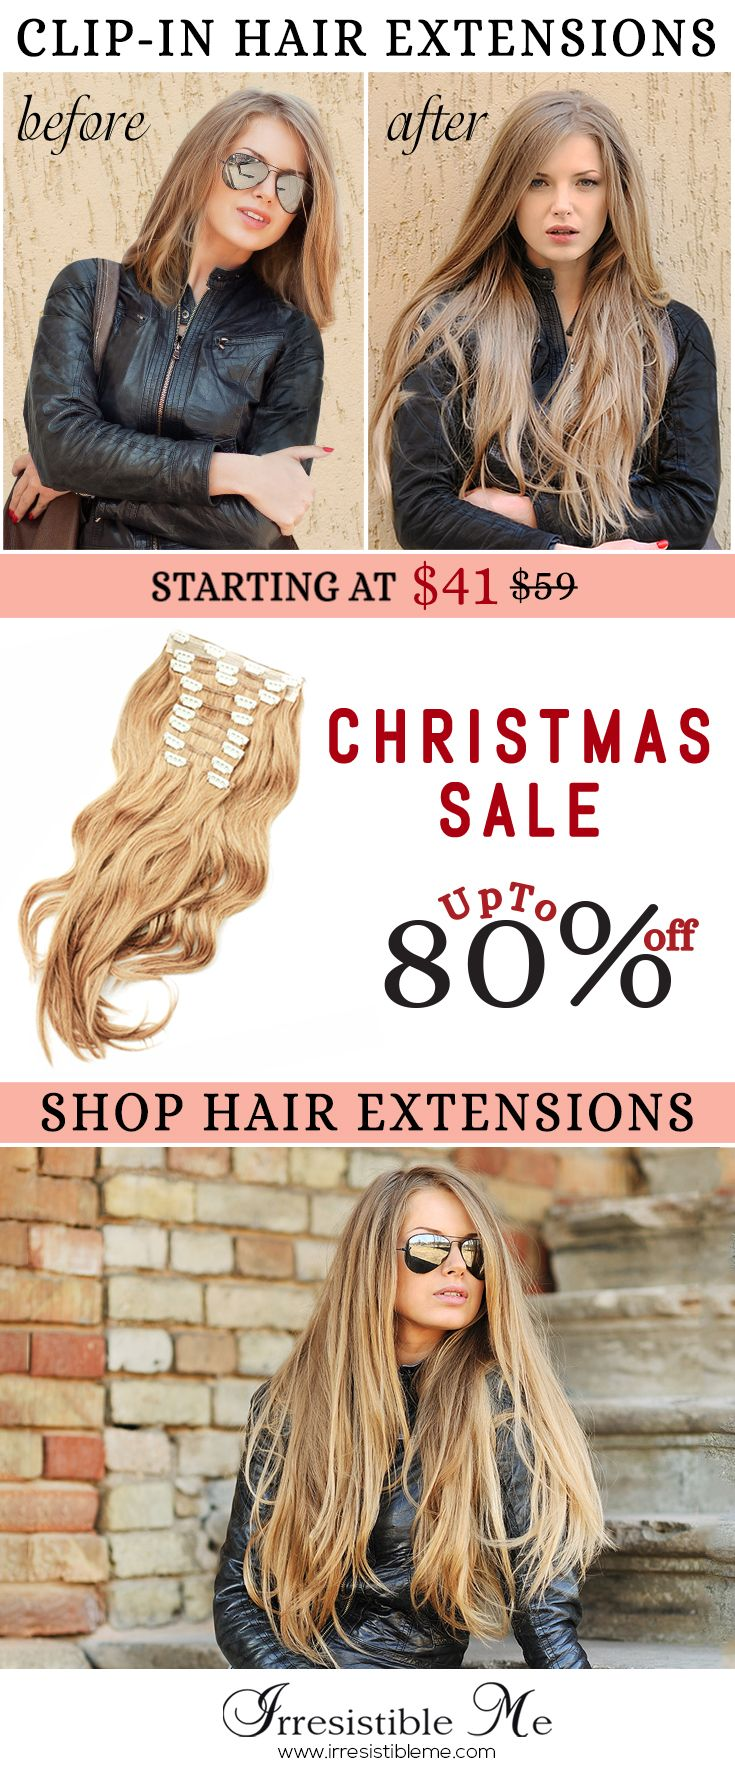 487 best irresistible me clip in hair extensions images on youll have instant long hair in less than 5 minutes with irresistible me 100 human remy clip in hair extensions pmusecretfo Choice Image